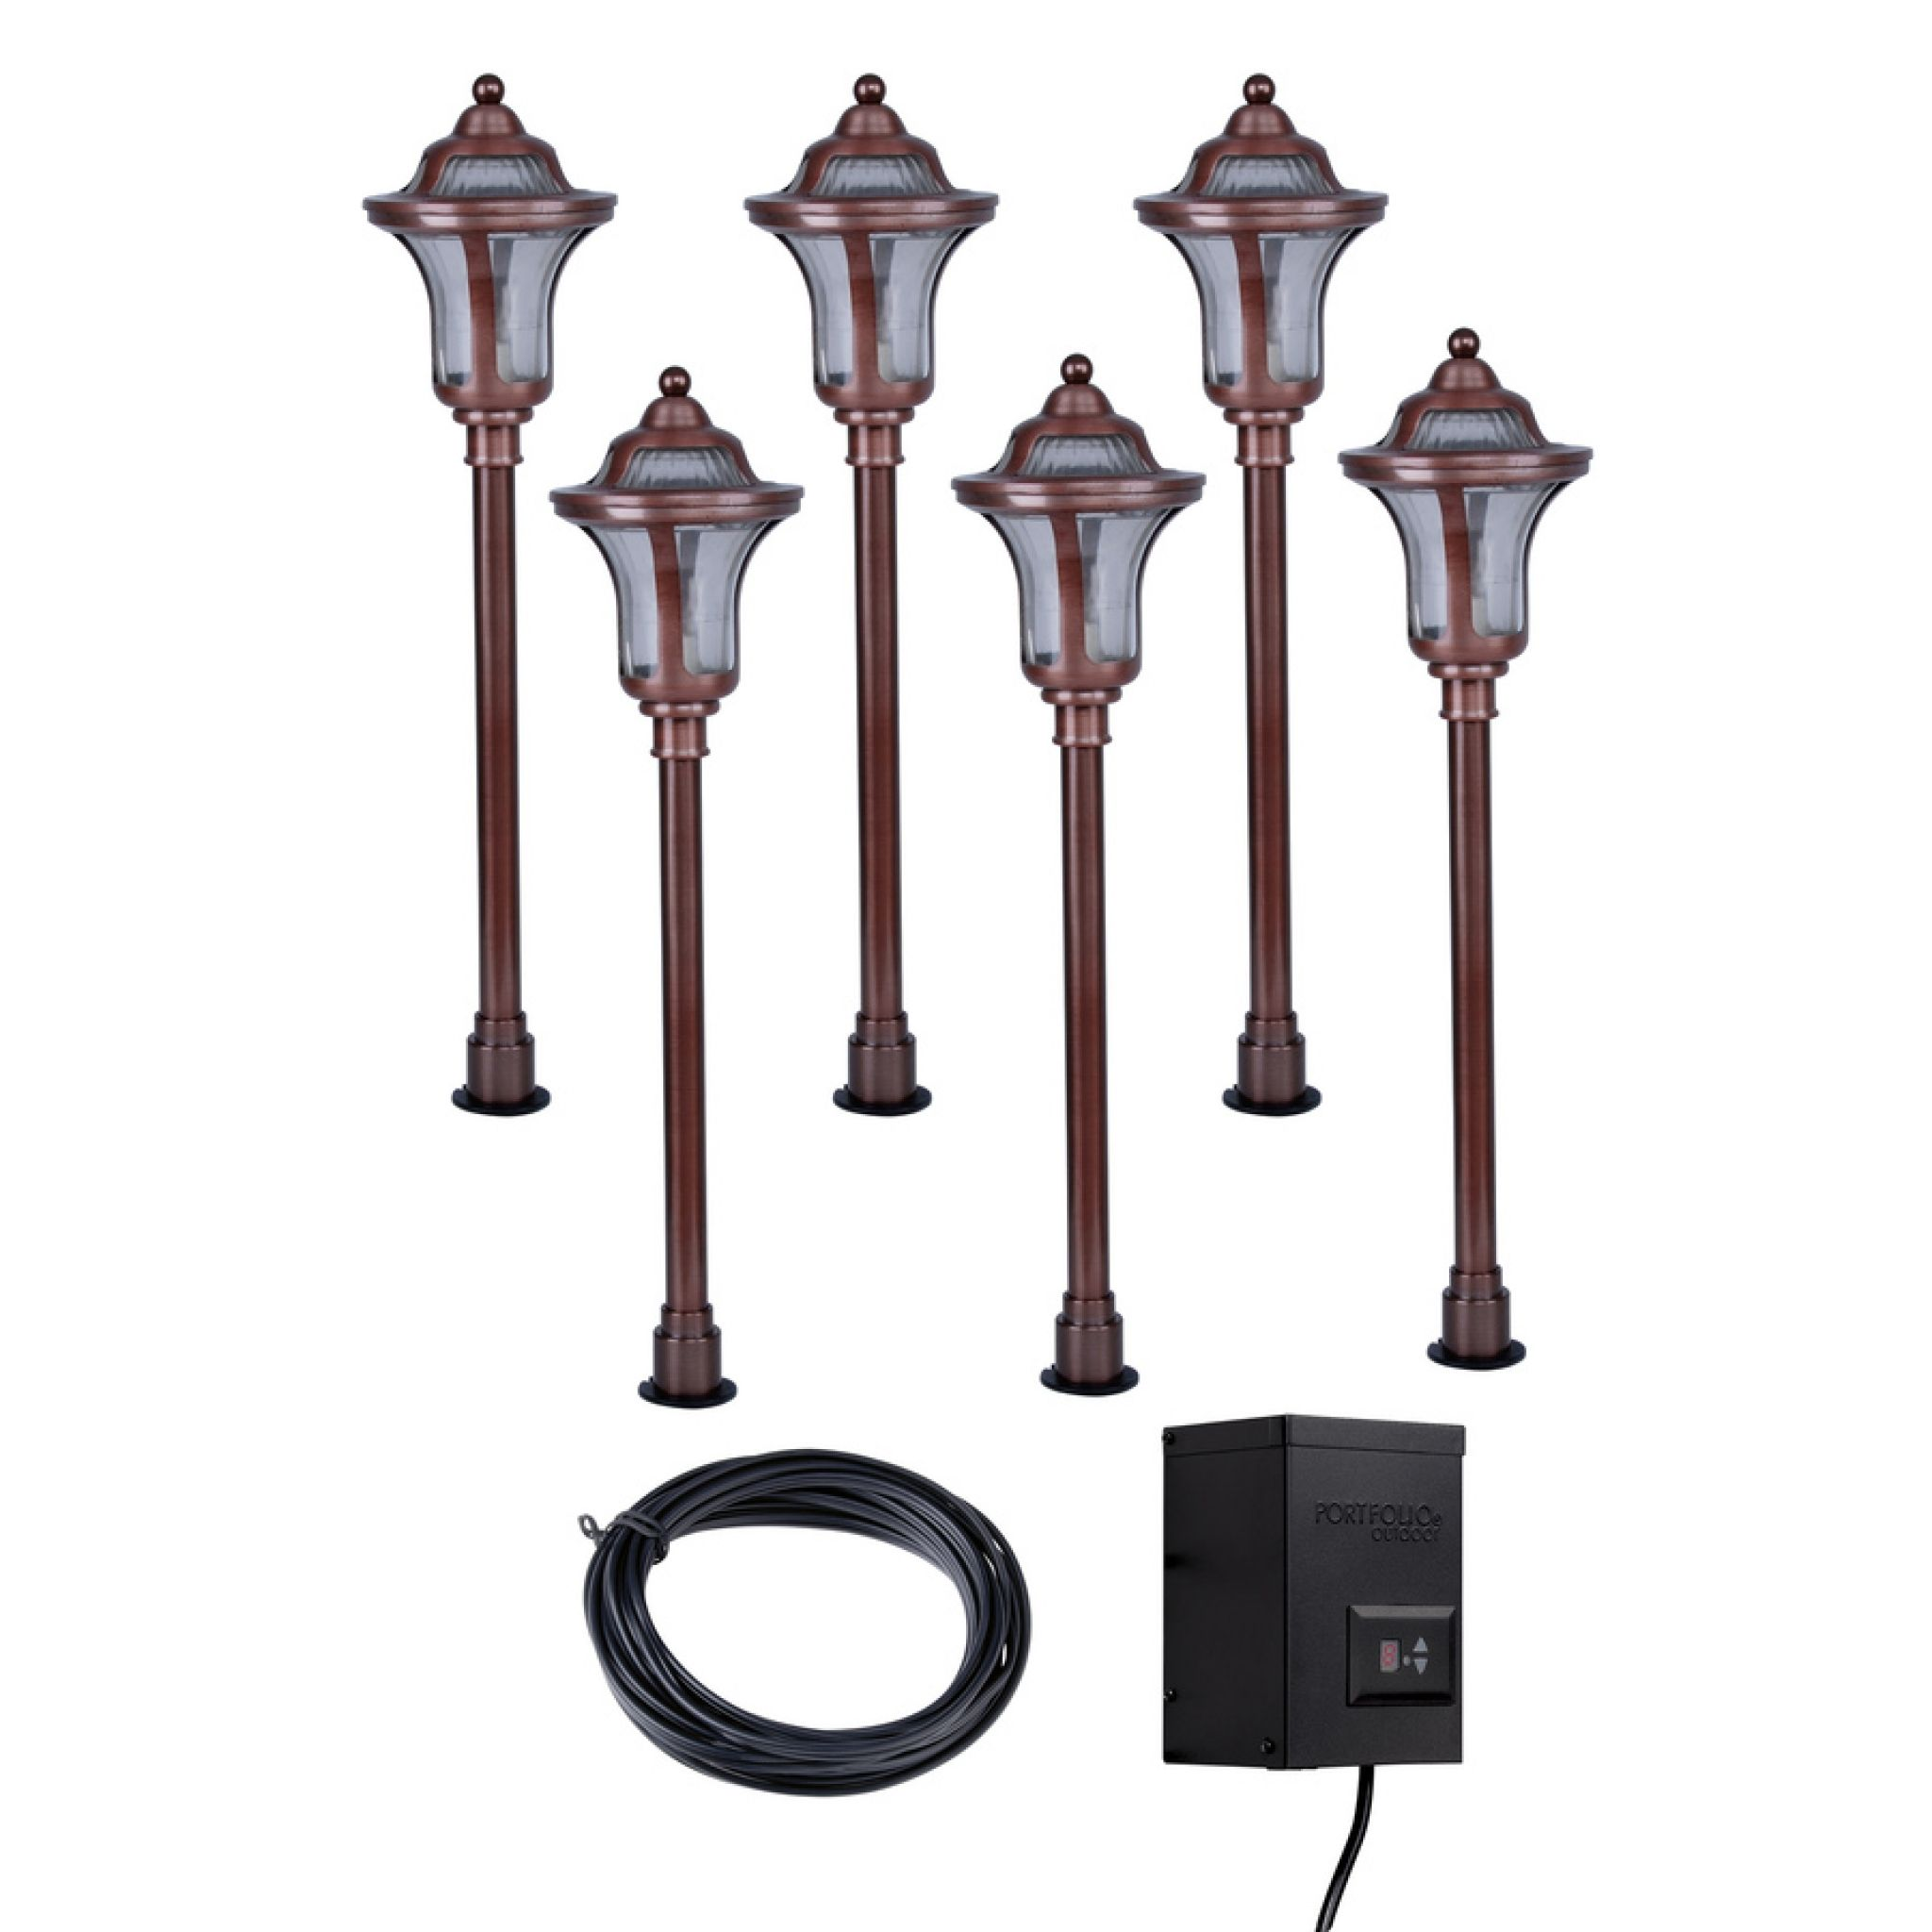 Led Outdoor Lighting Kits Best Paint For Interior Check More At Http Www Mtbasics Low Voltage